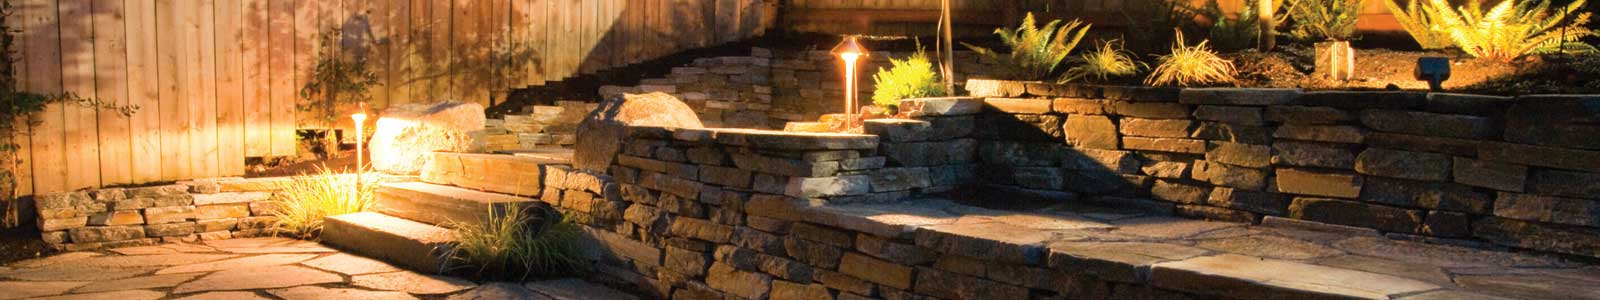 Cedar Hill Property Maintenance Hardscape Services